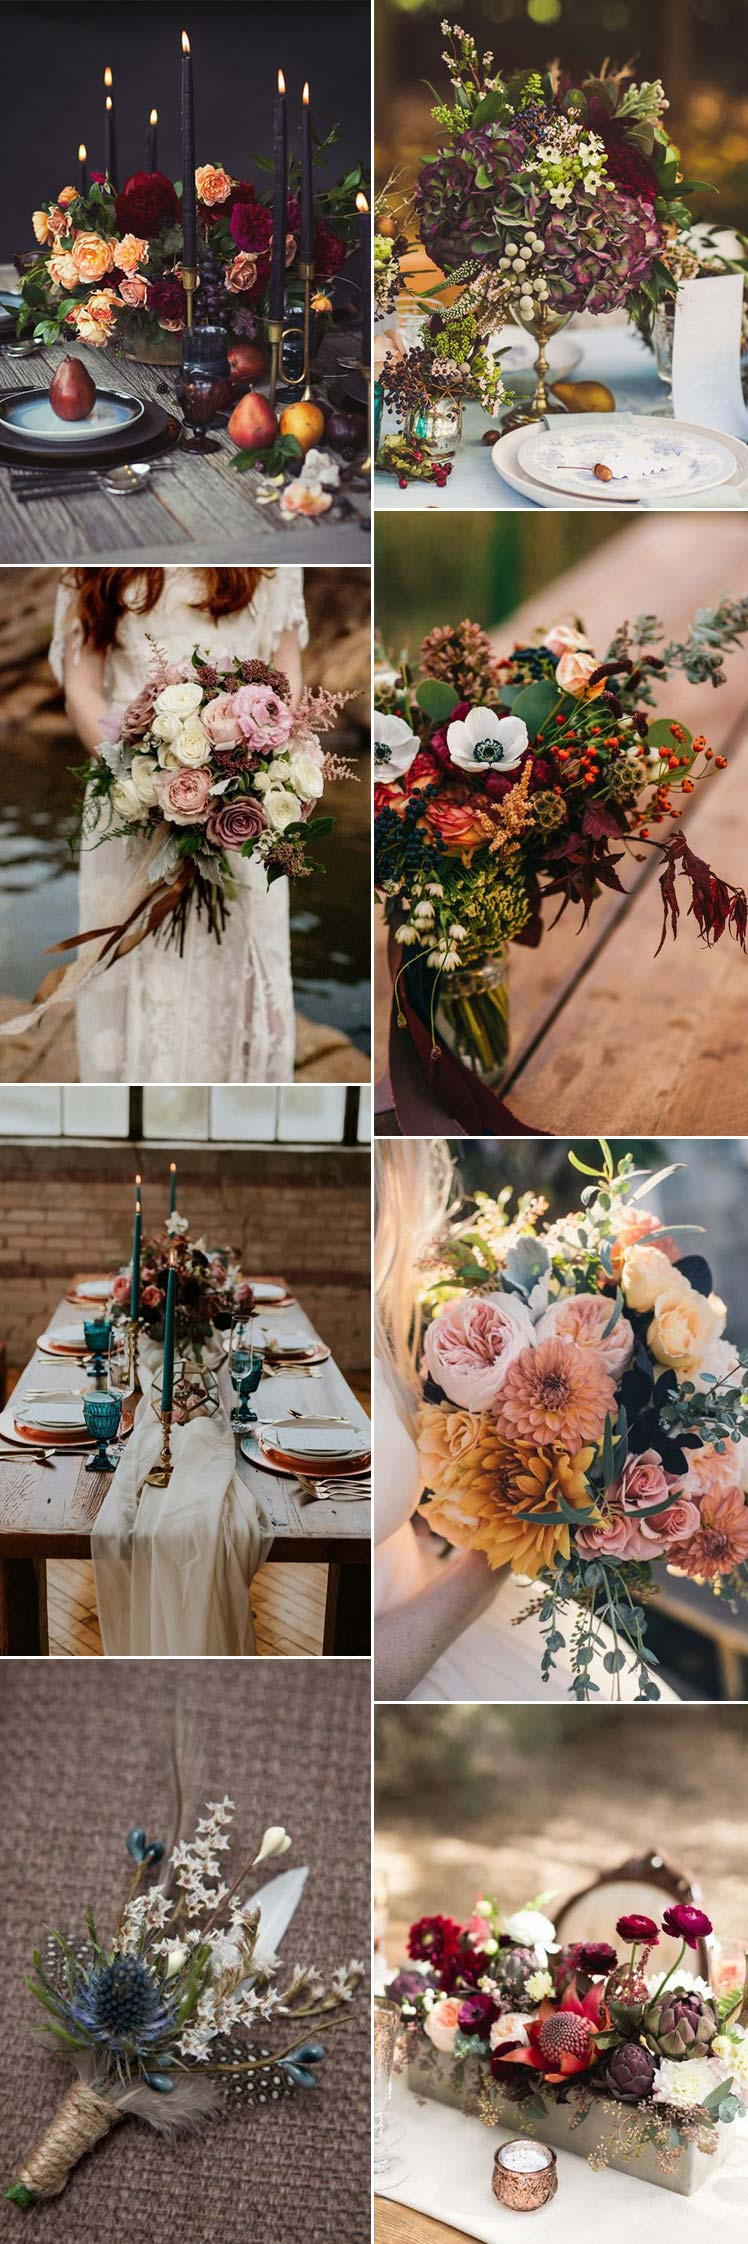 Flowers for an autumn wedding